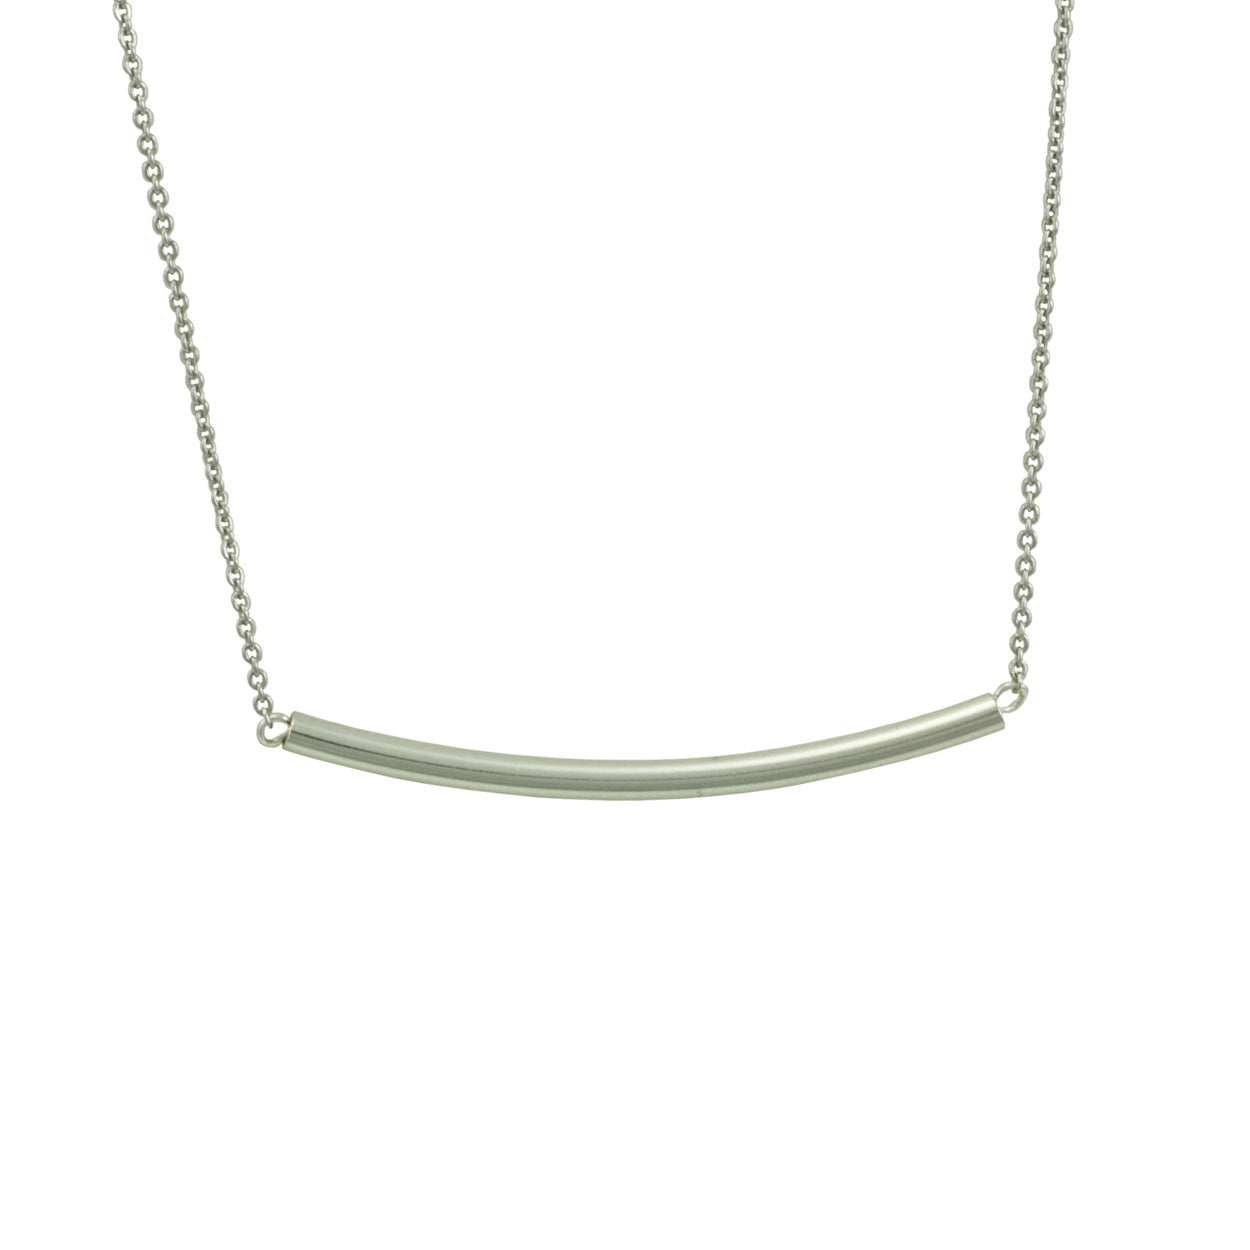 Sterling Silver 'stunning' Curved Bar Necklace For Most Up To Date Sparkling Curved Bar Necklaces (Gallery 4 of 25)